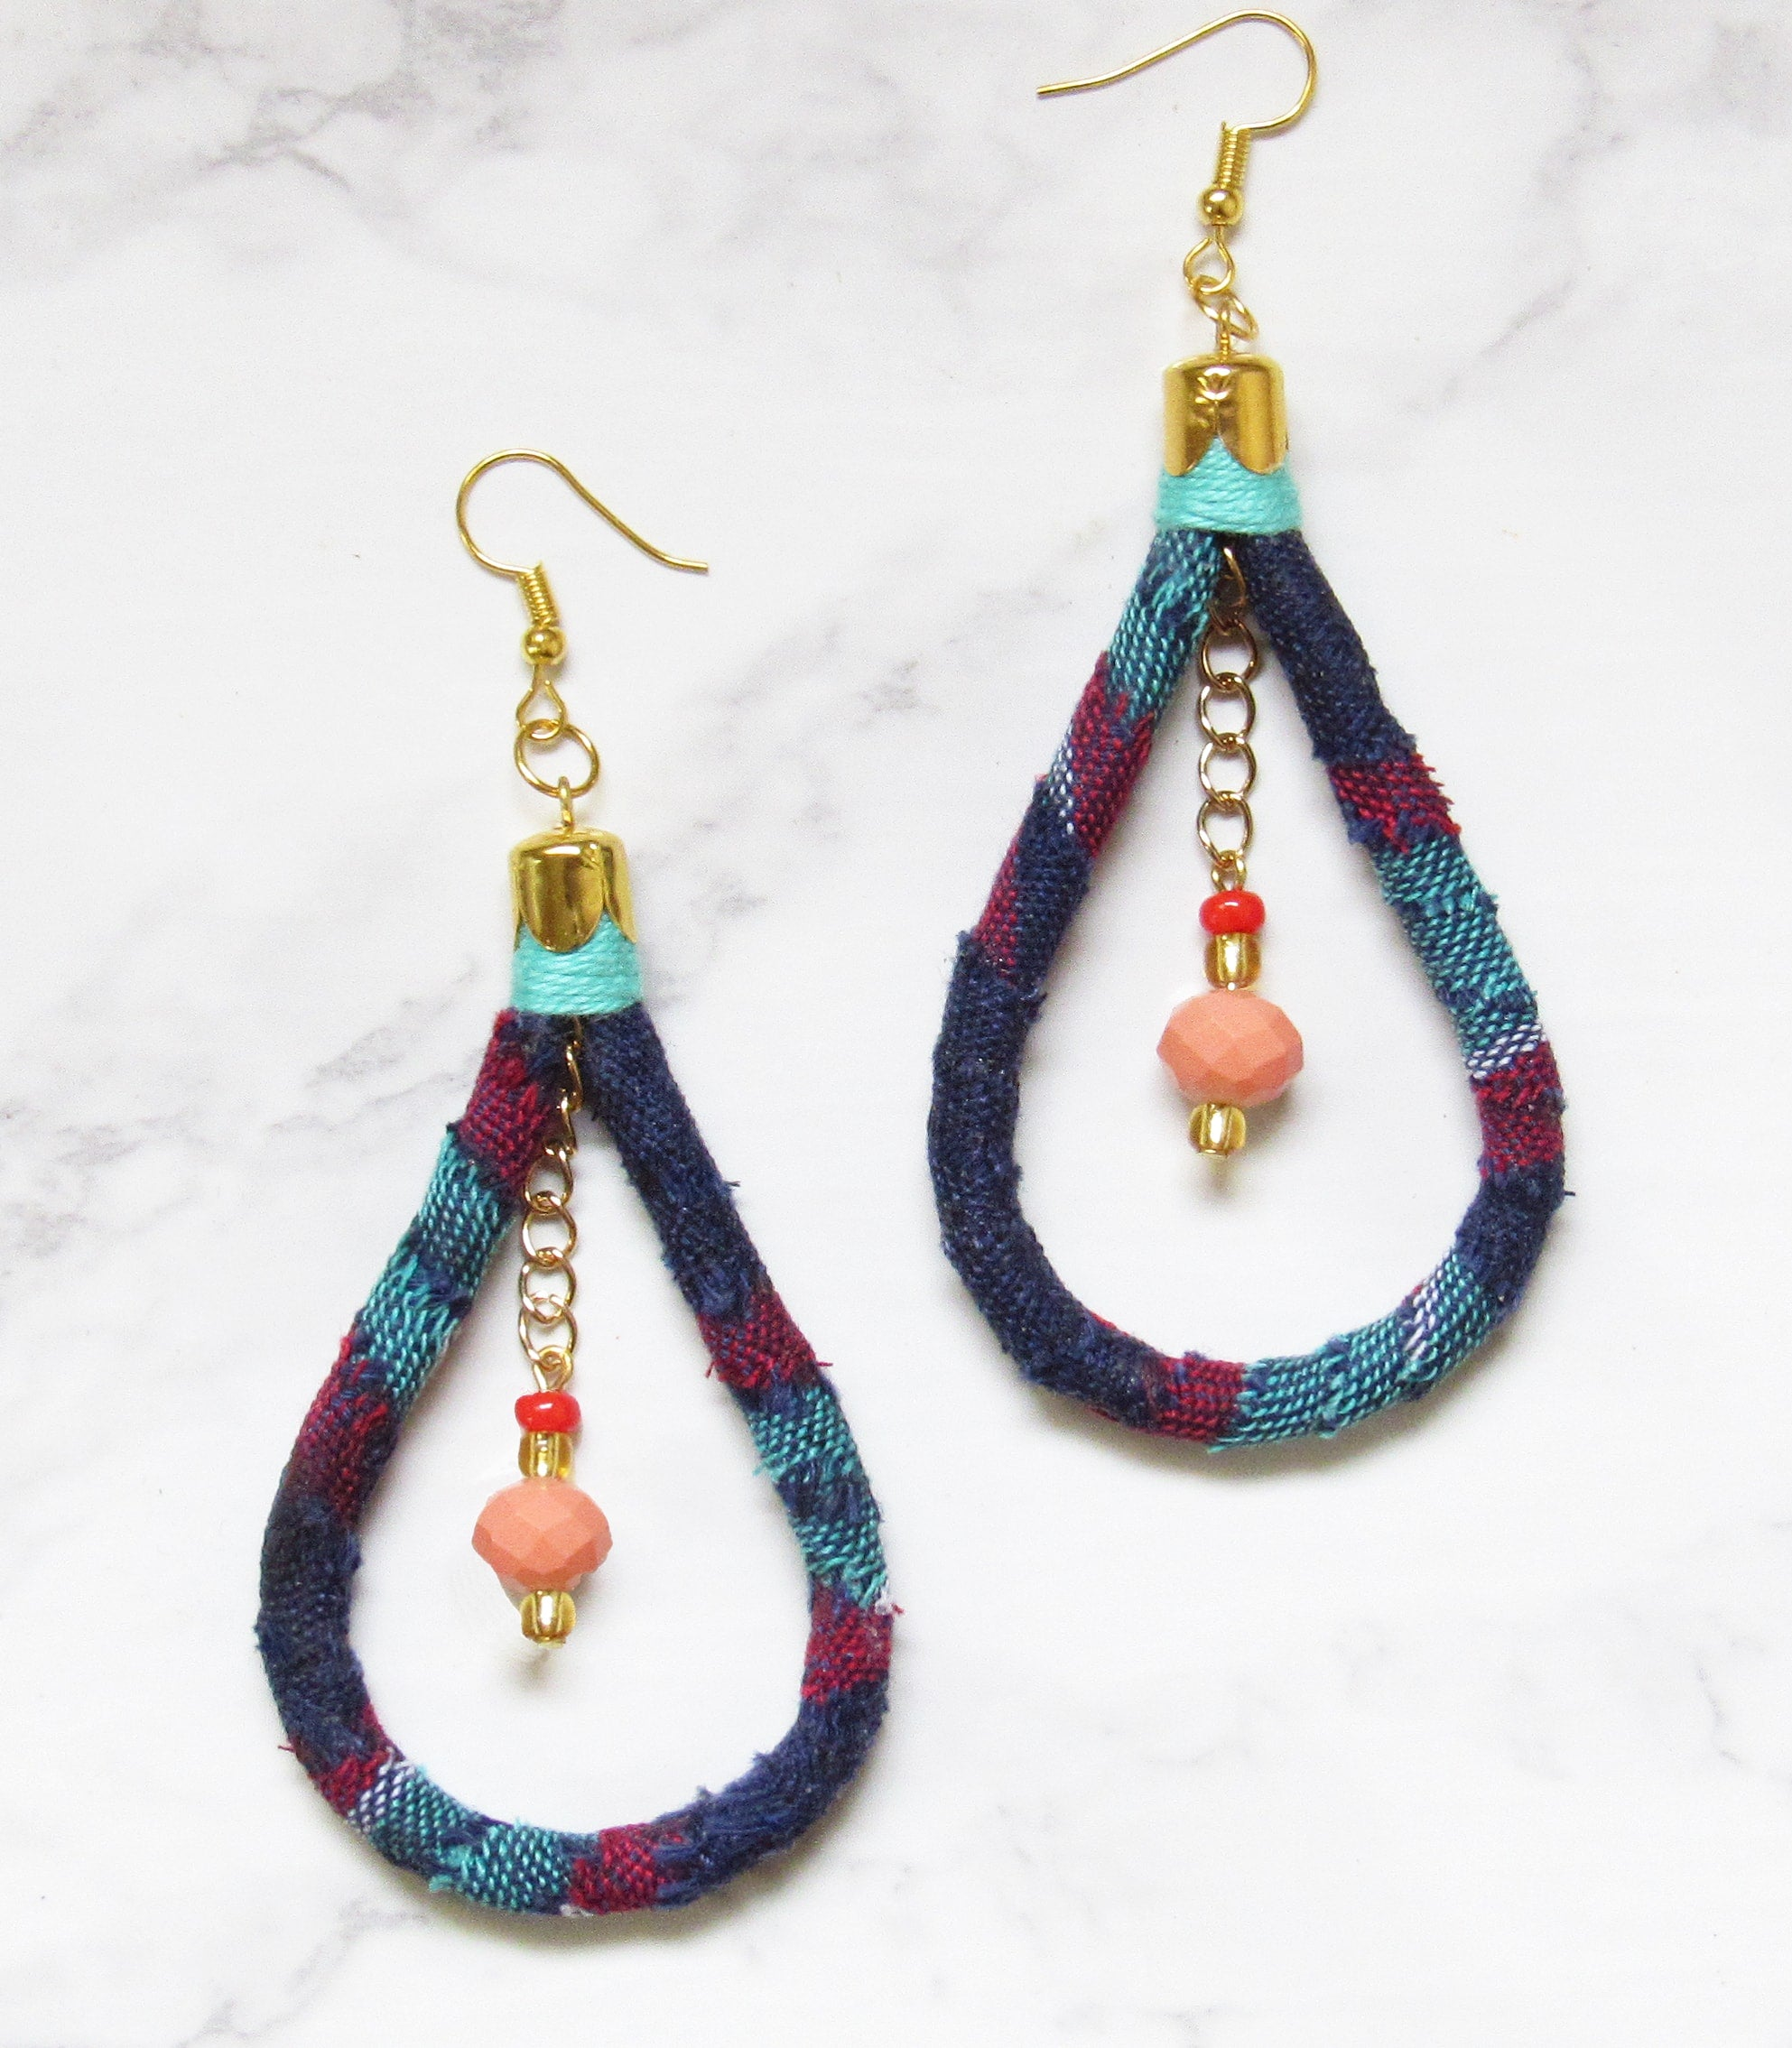 Kantarines Bead Earrings - Pink